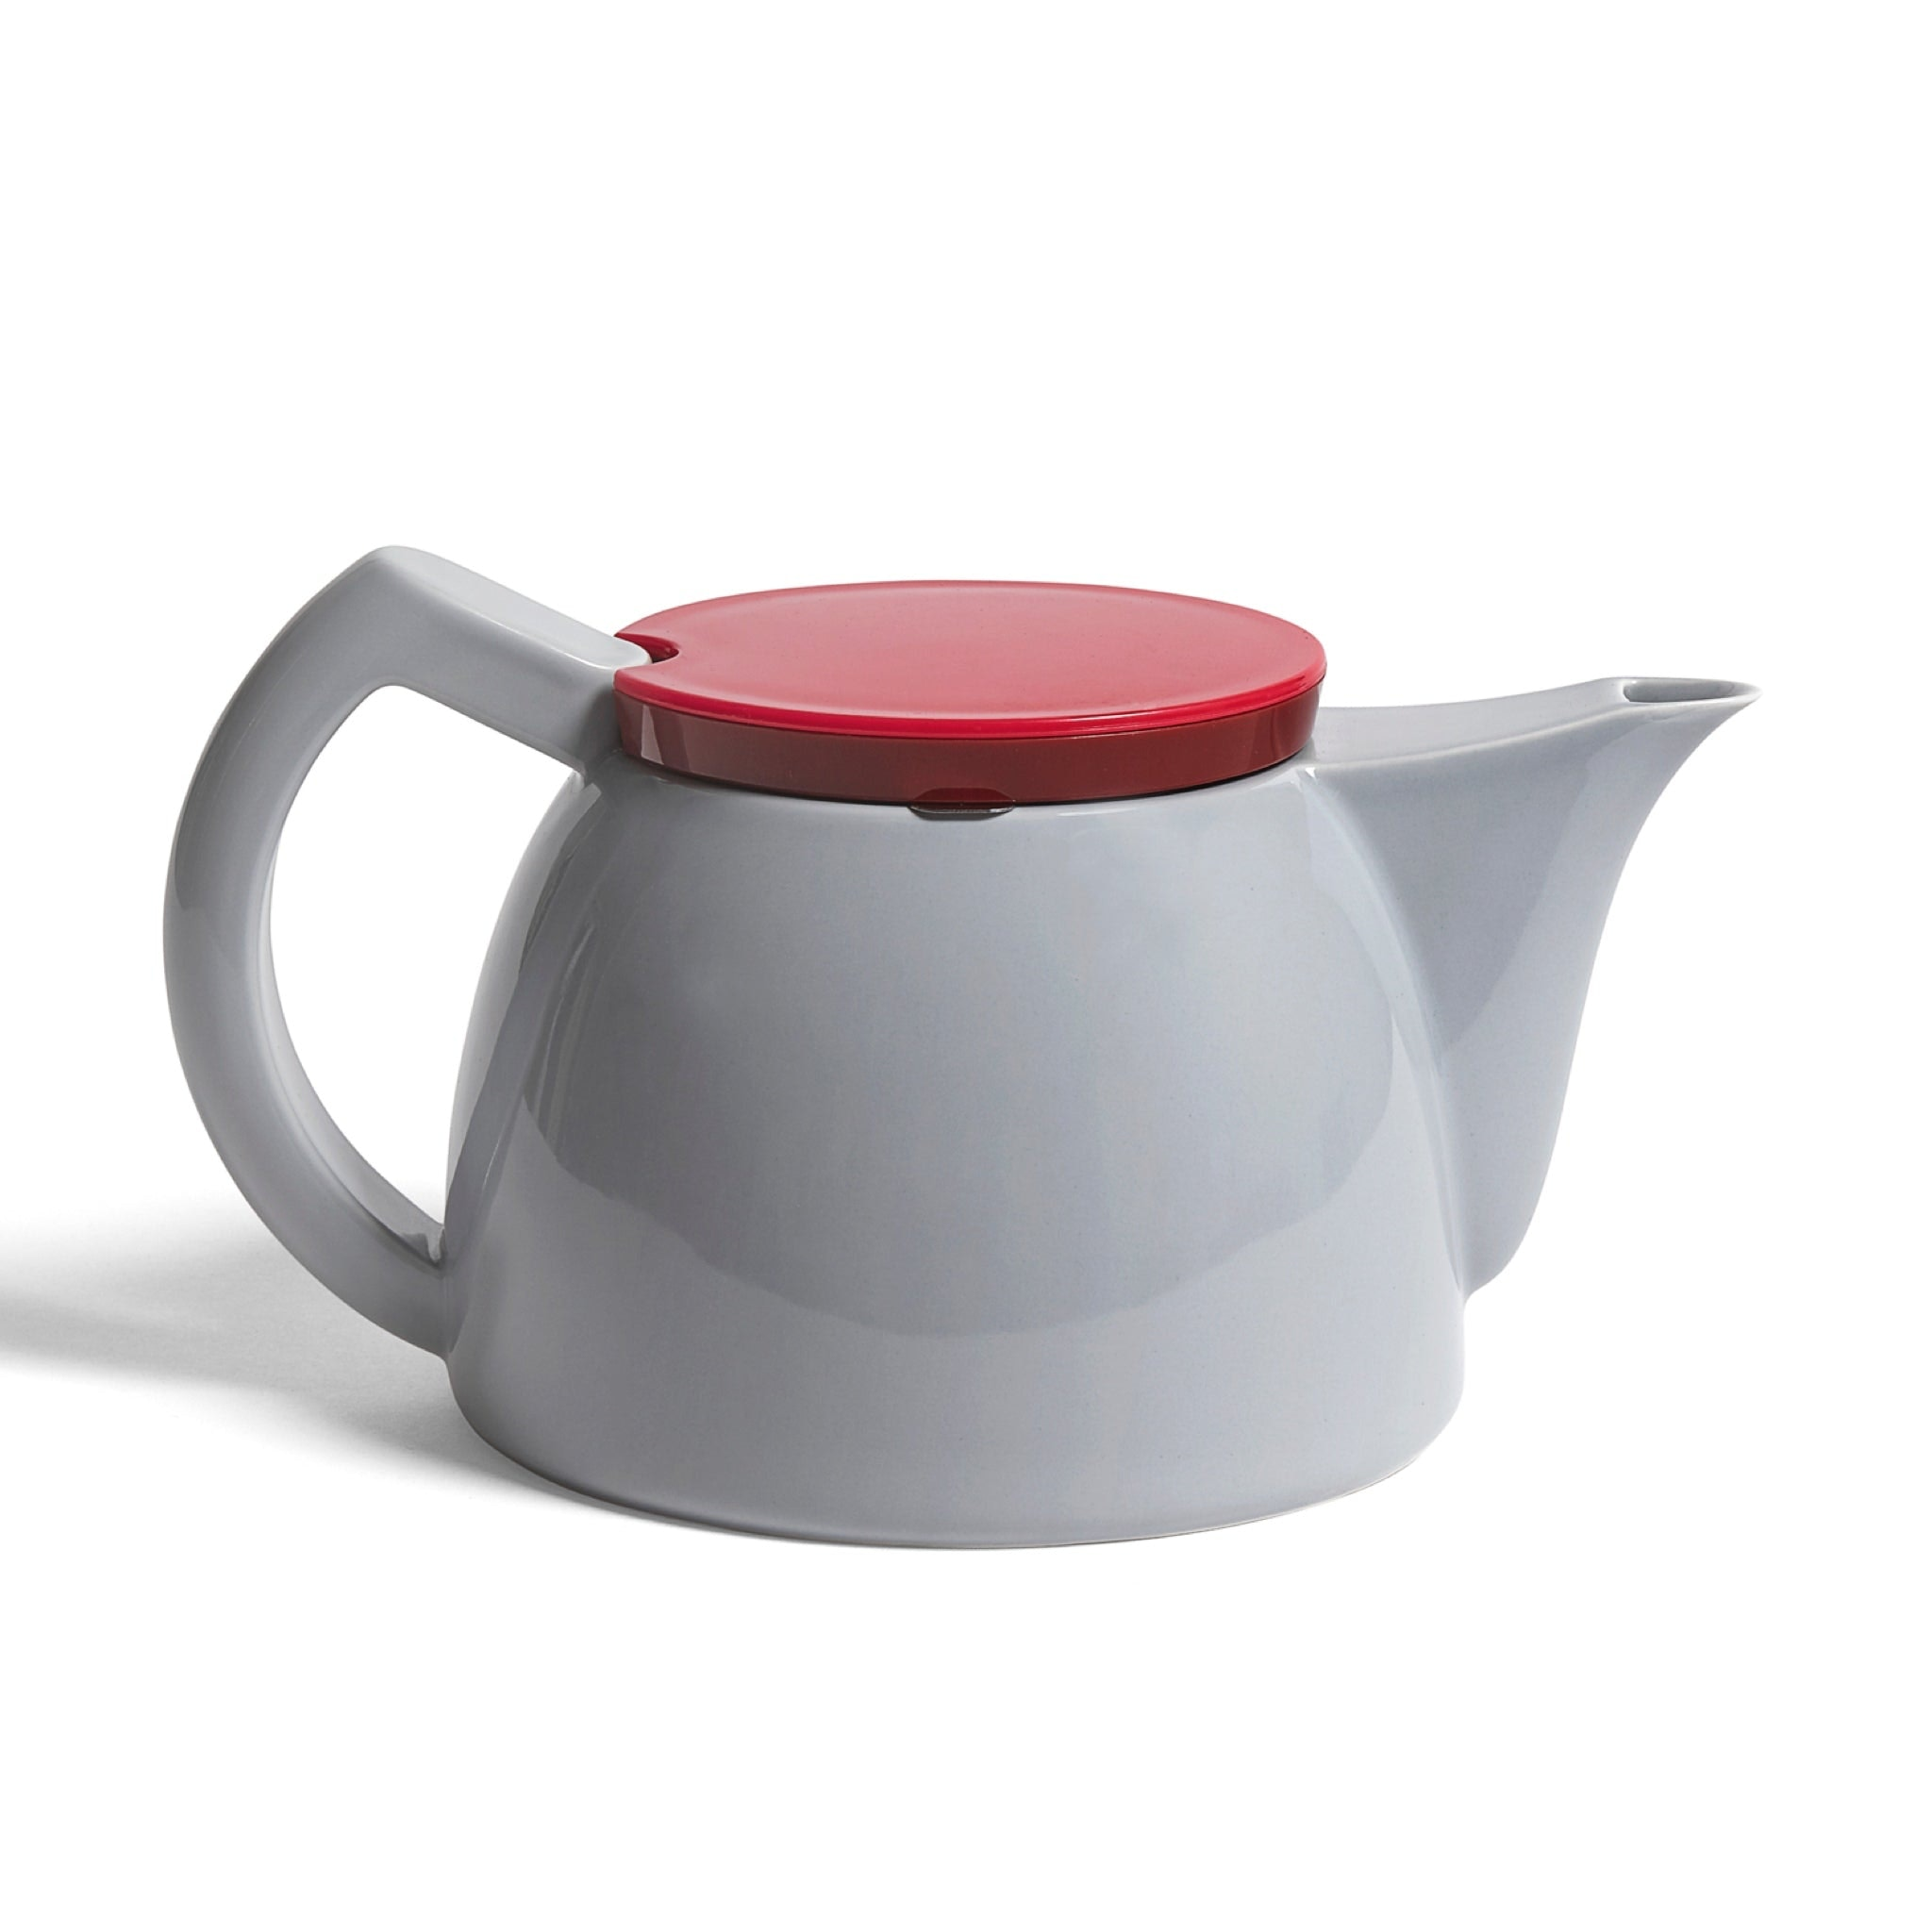 Tea Pot by Hay